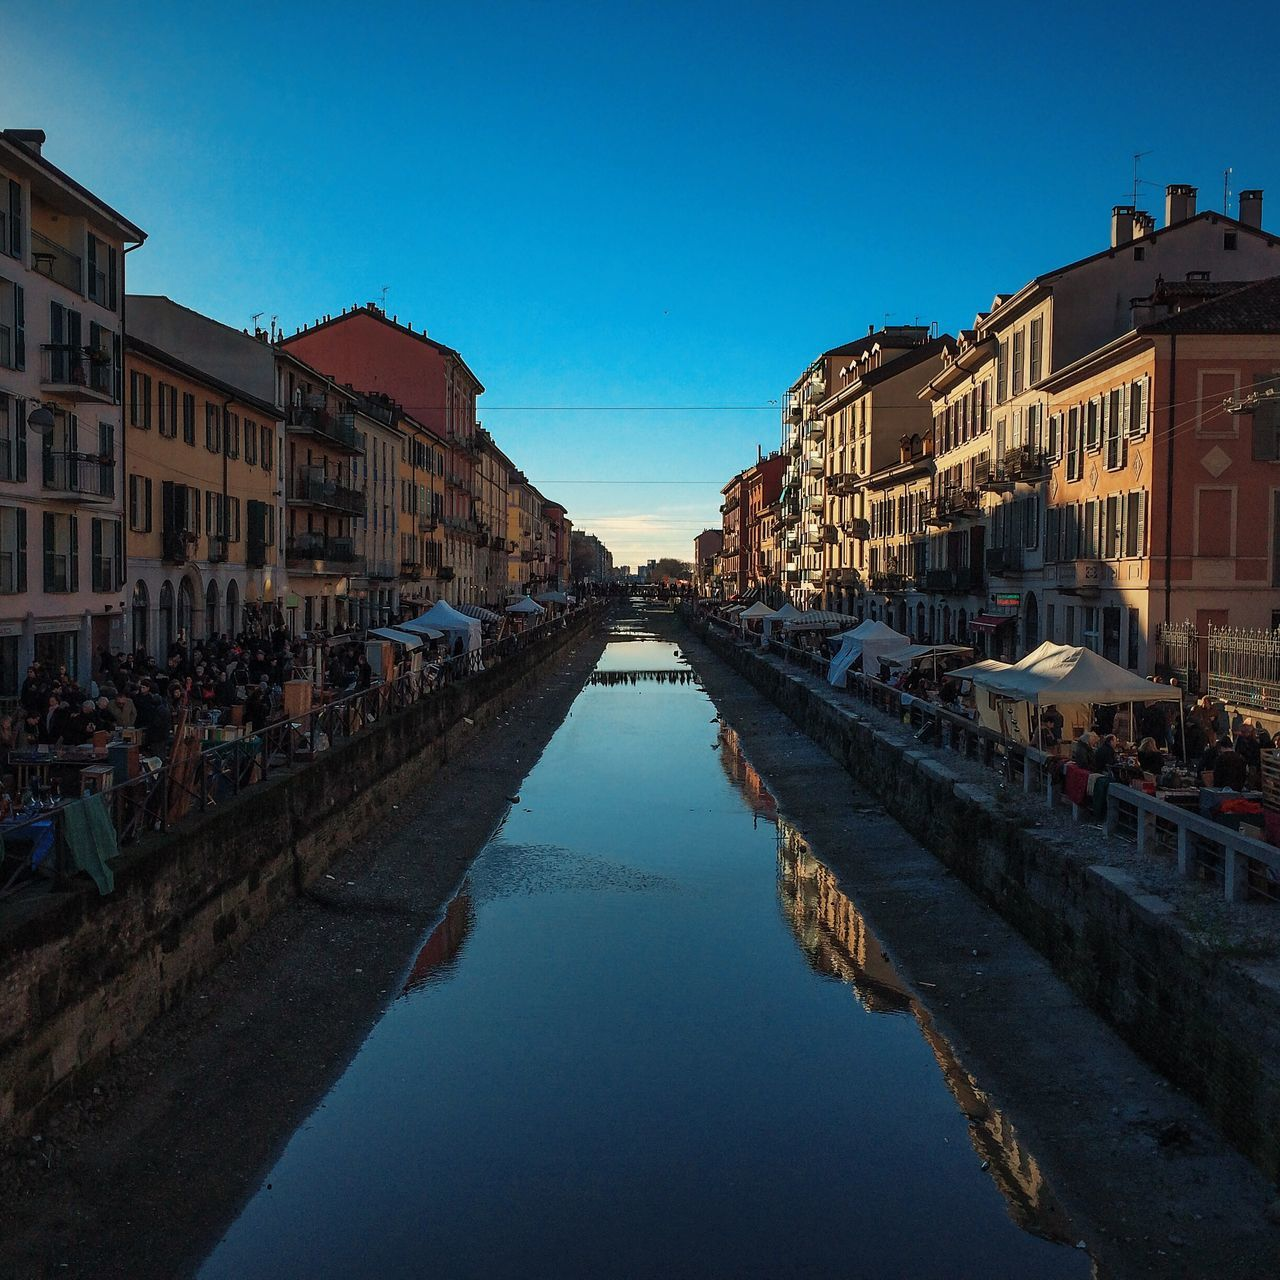 Naviglio Grande AMPt - Street NEM Street NEM Submissions AMPt - Vanishing Point NEM Landscapes